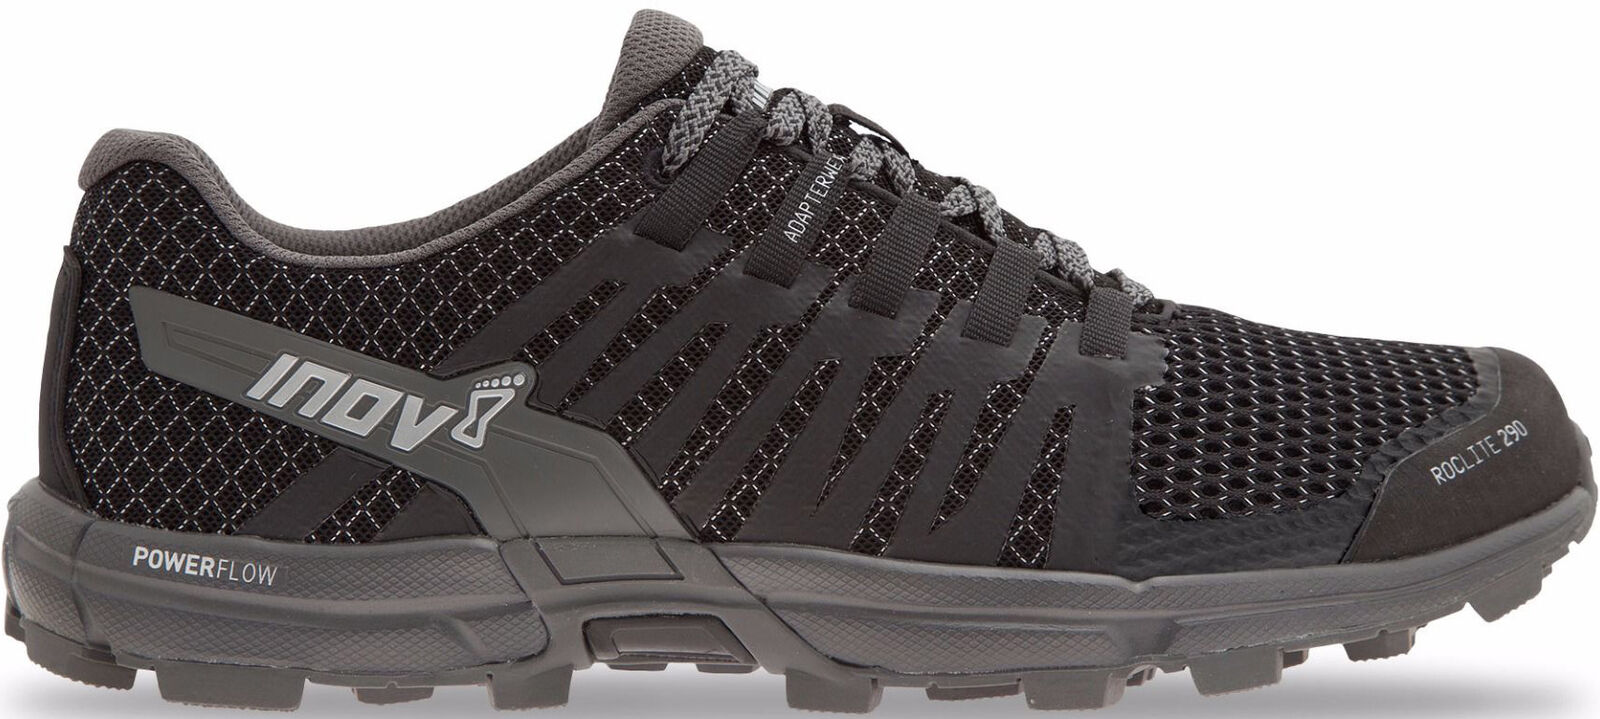 Inov8 Roclite 290 Womens Trail Running shoes - Black